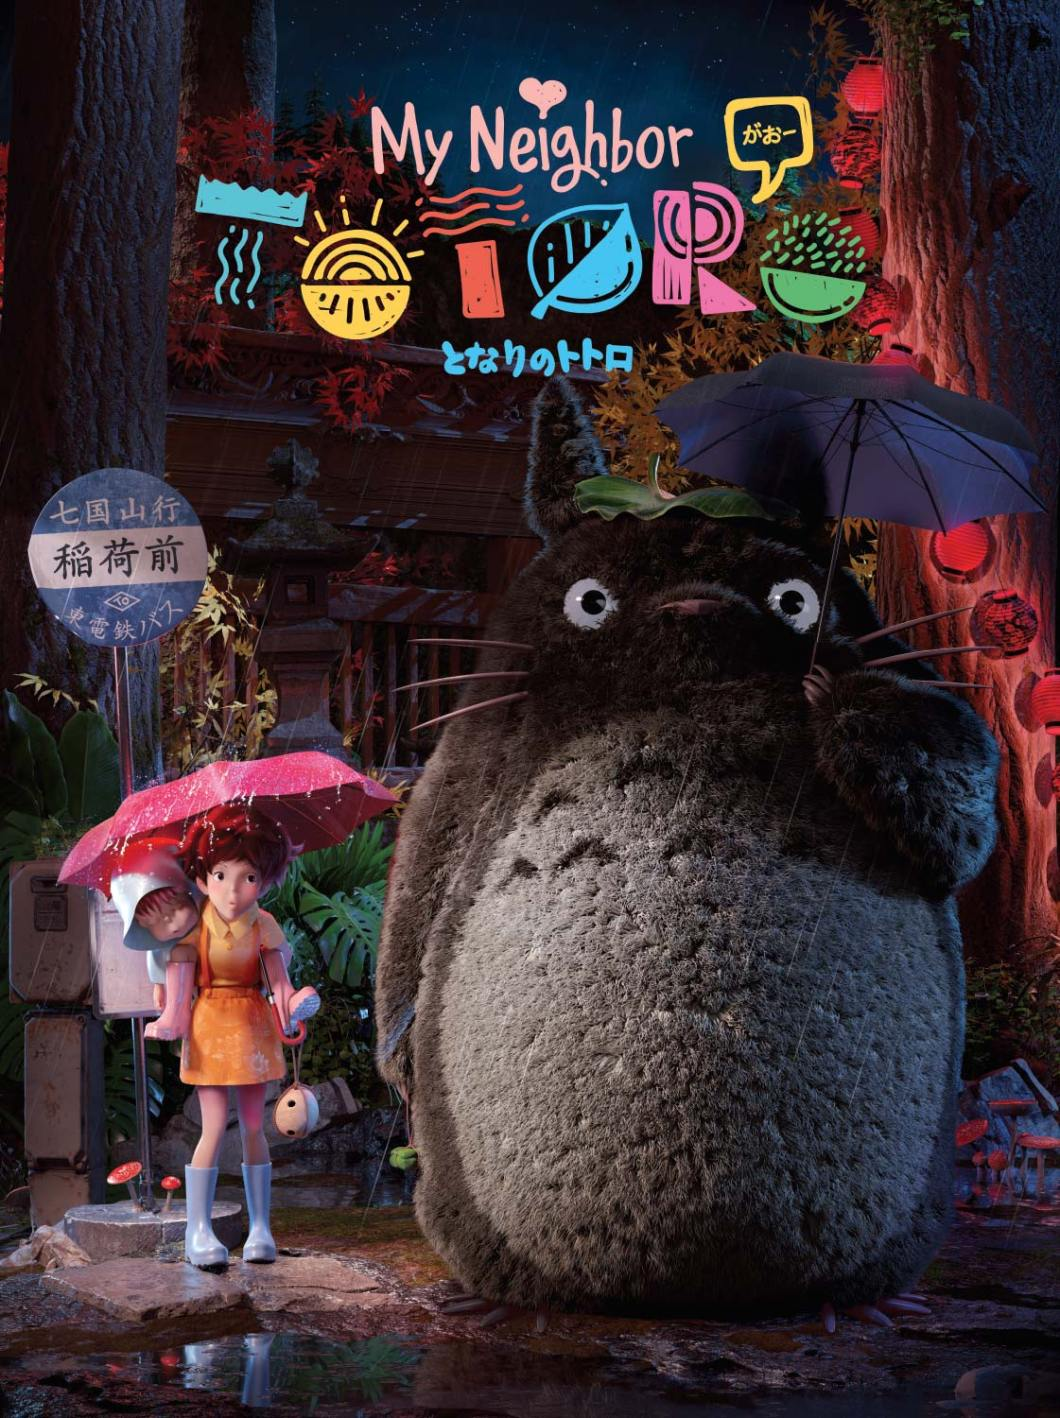 totoro, ghibli, studio, ngon, manchester agency, 3D design